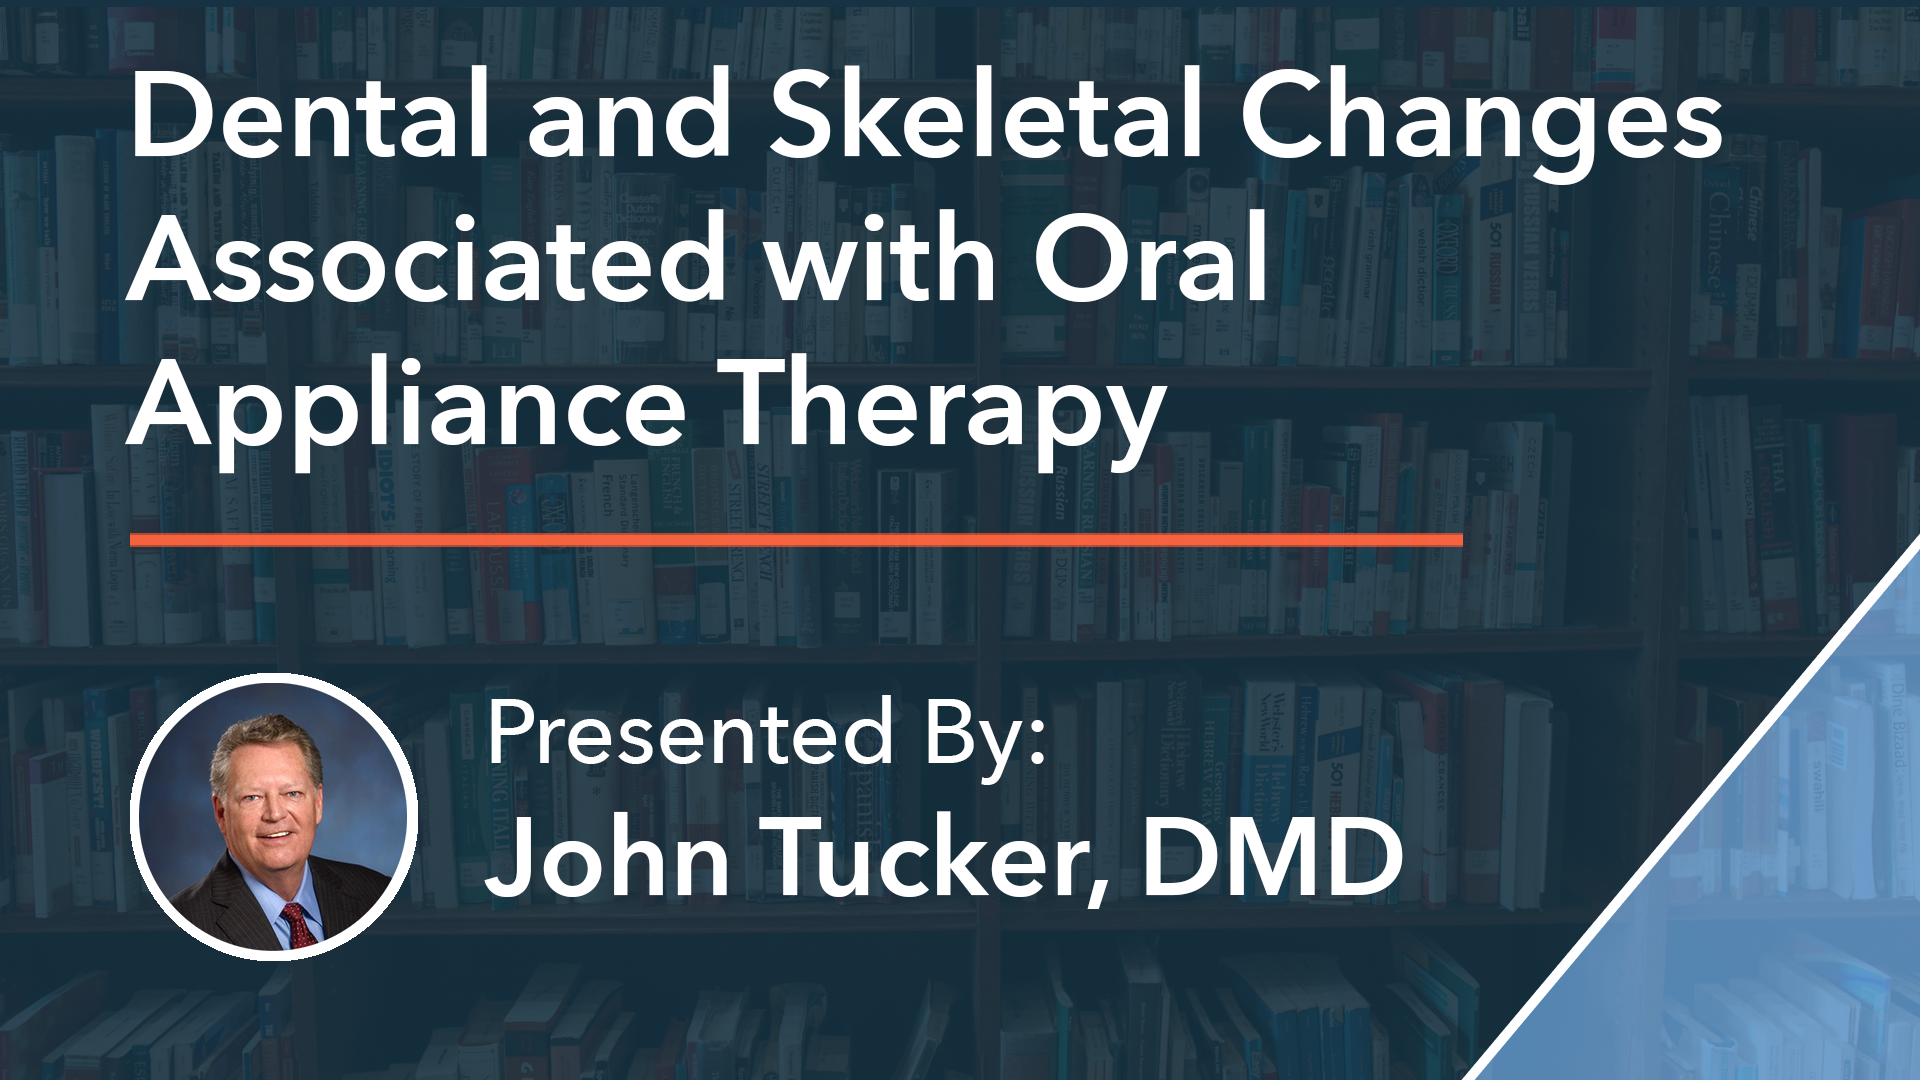 Dental and Skeletal Changes Associated with Oral Appliance Therapy Dr John Tucker